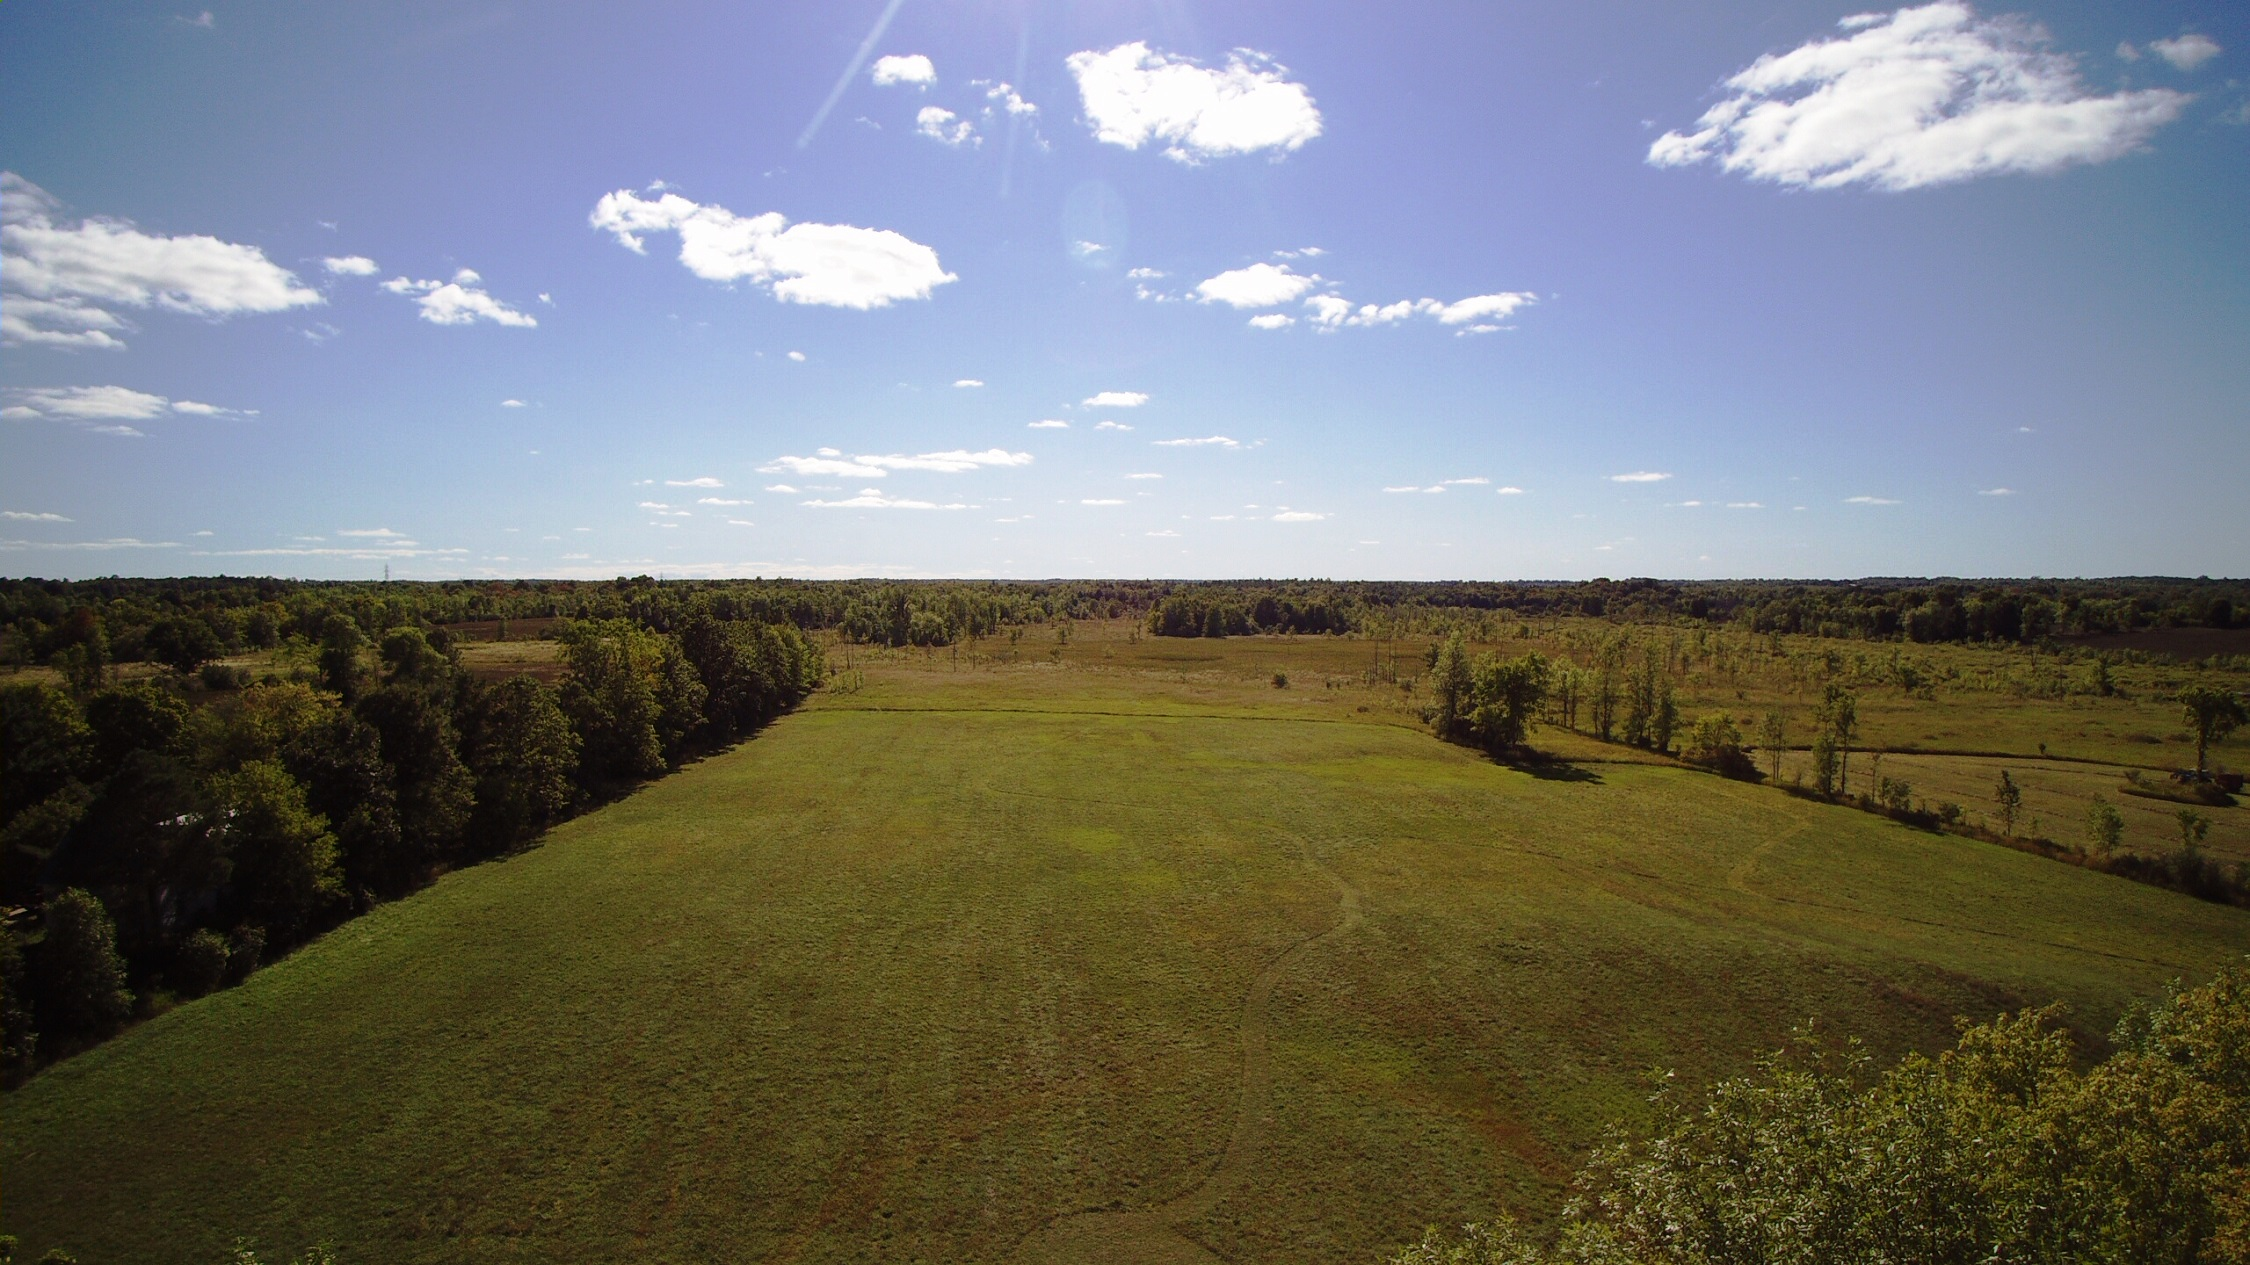 Noonan Road Lot Acreage Rideau Lakes Gurreathomes